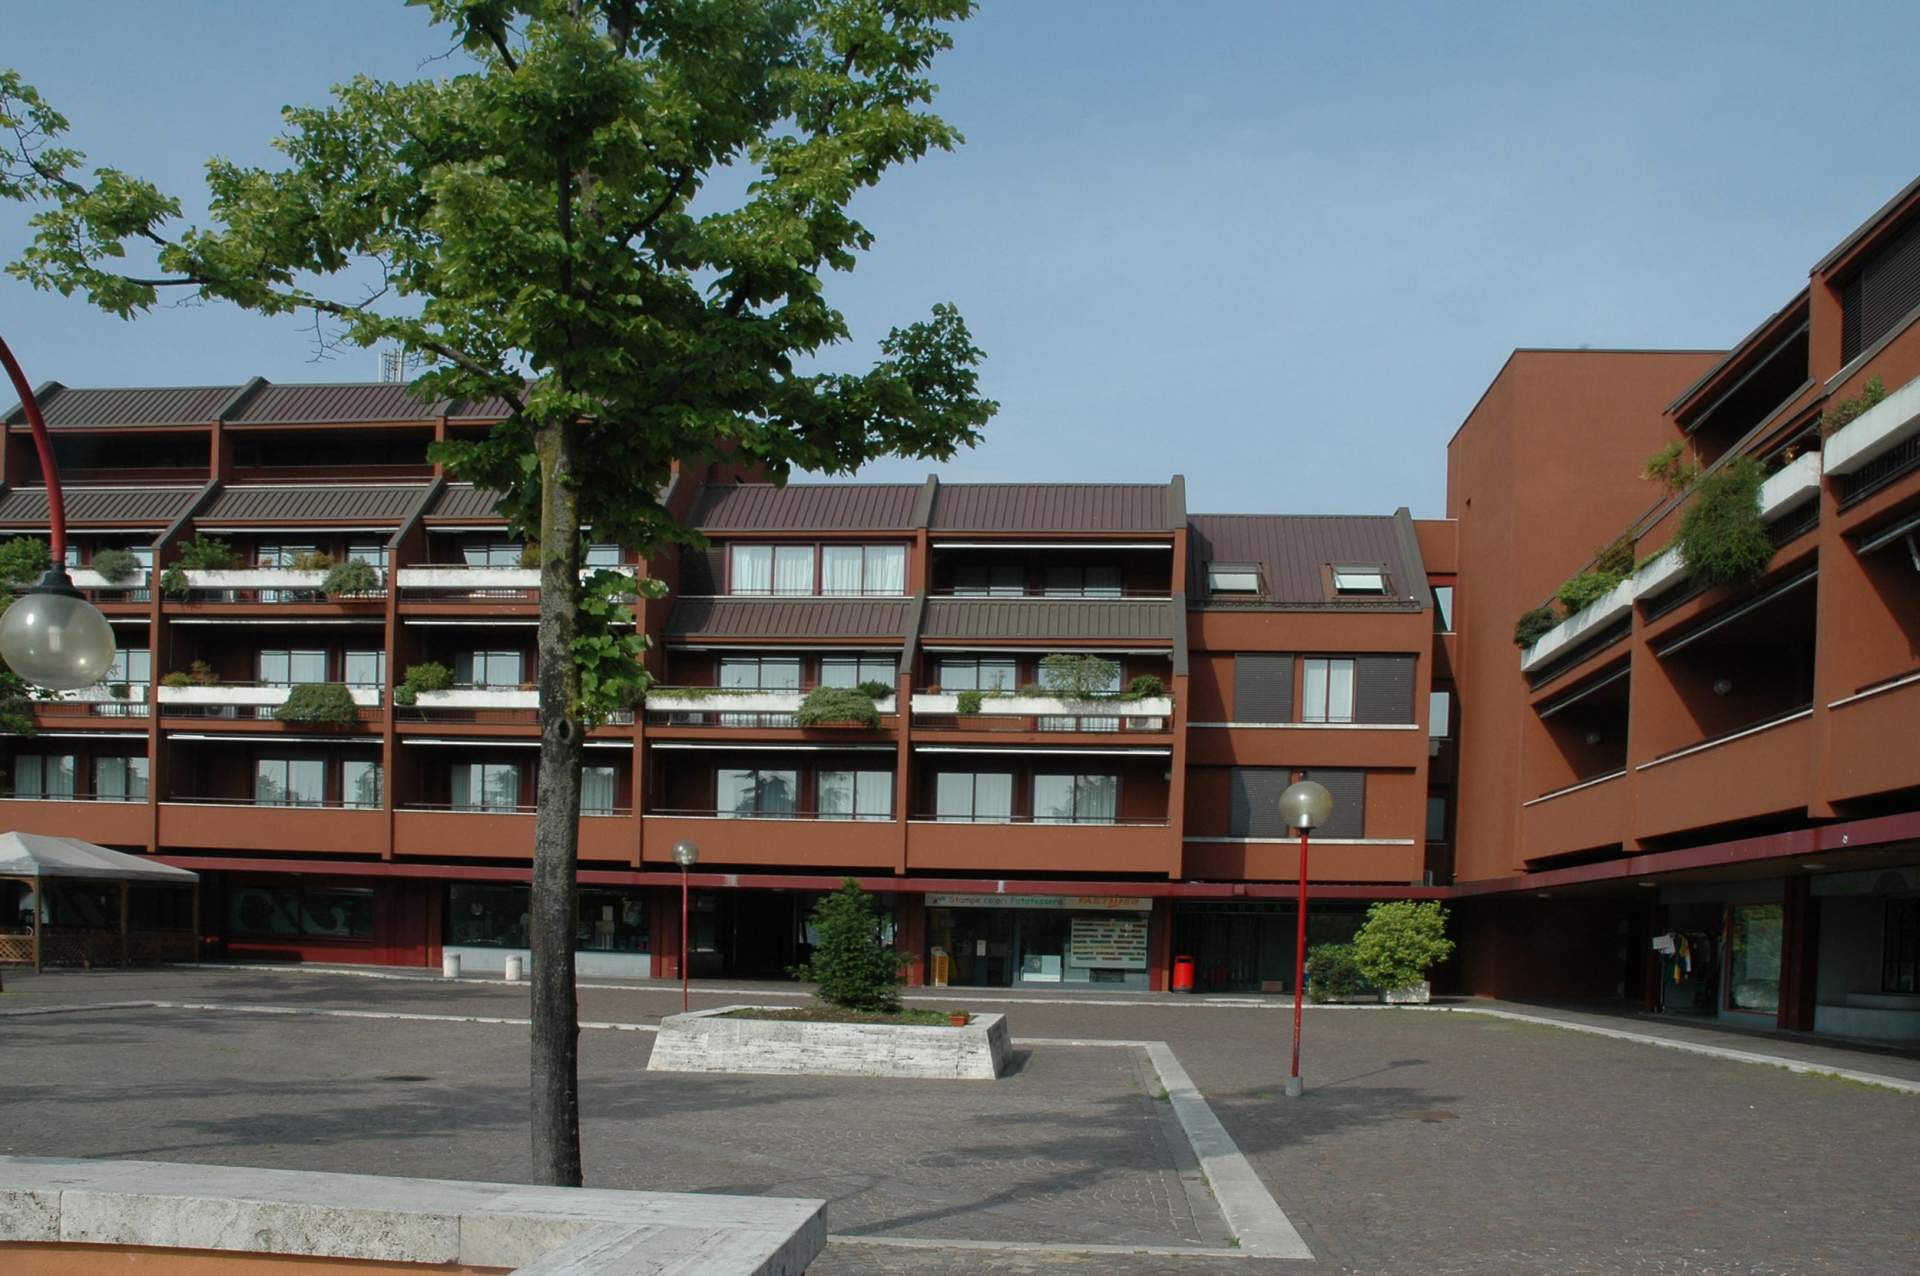 Residential buildings milano 3 ragazzi and partners for Hotel arizona milano